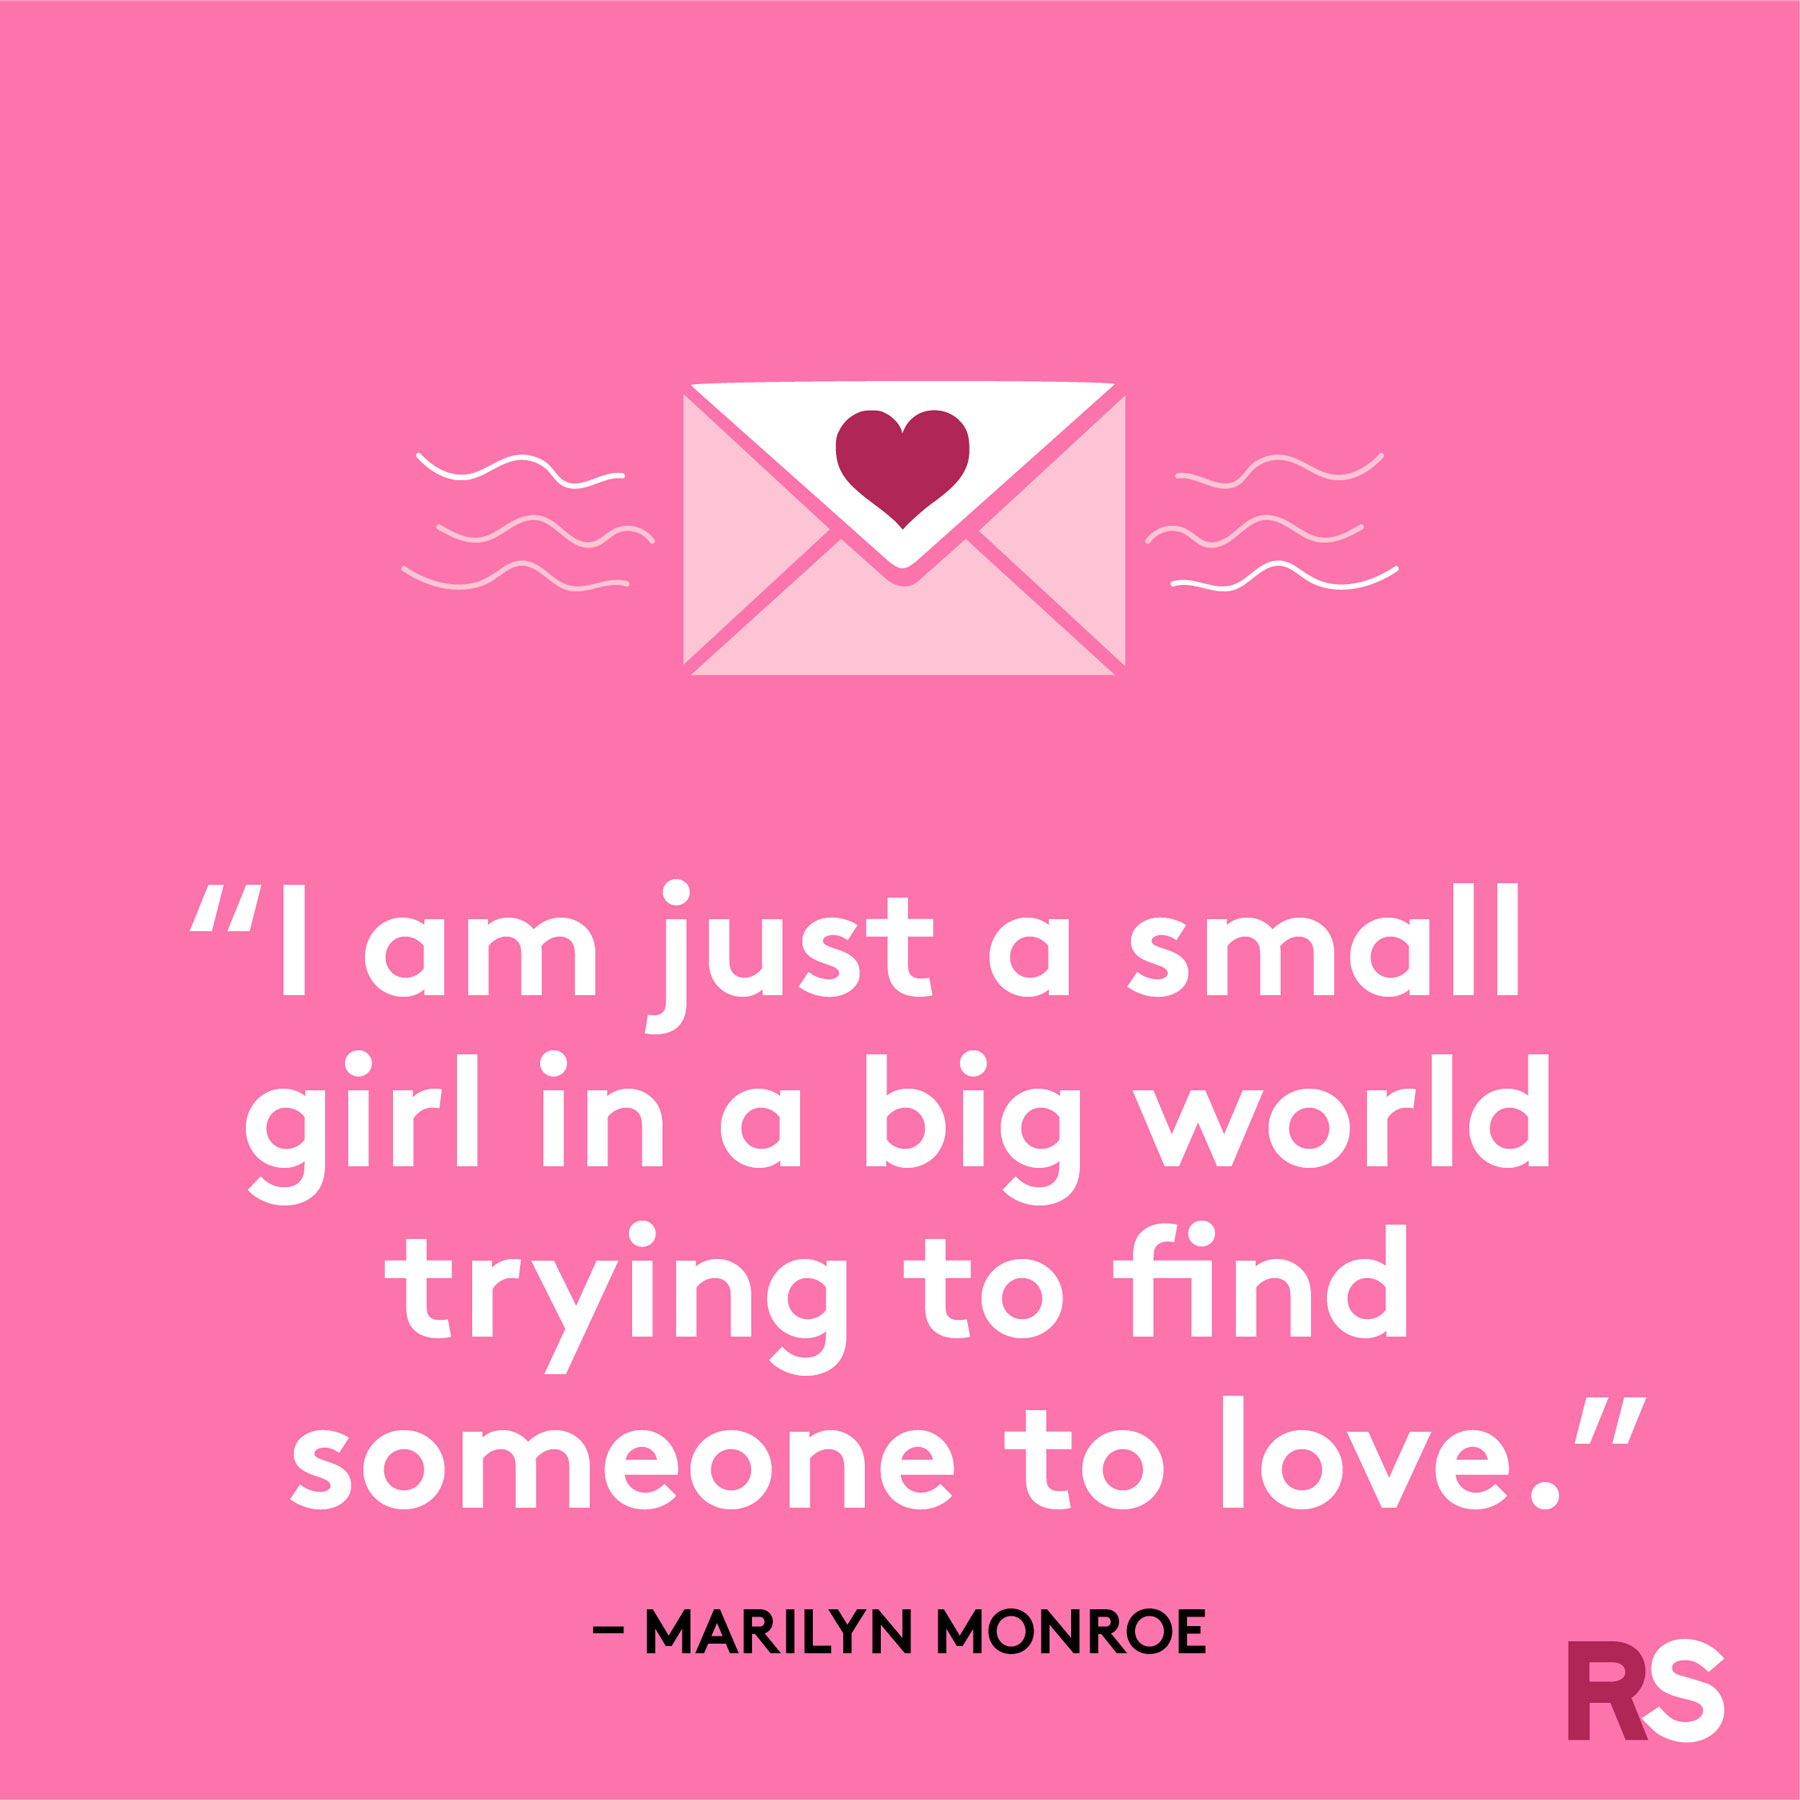 Love quotes, quotes about love - Marilyn Monroe